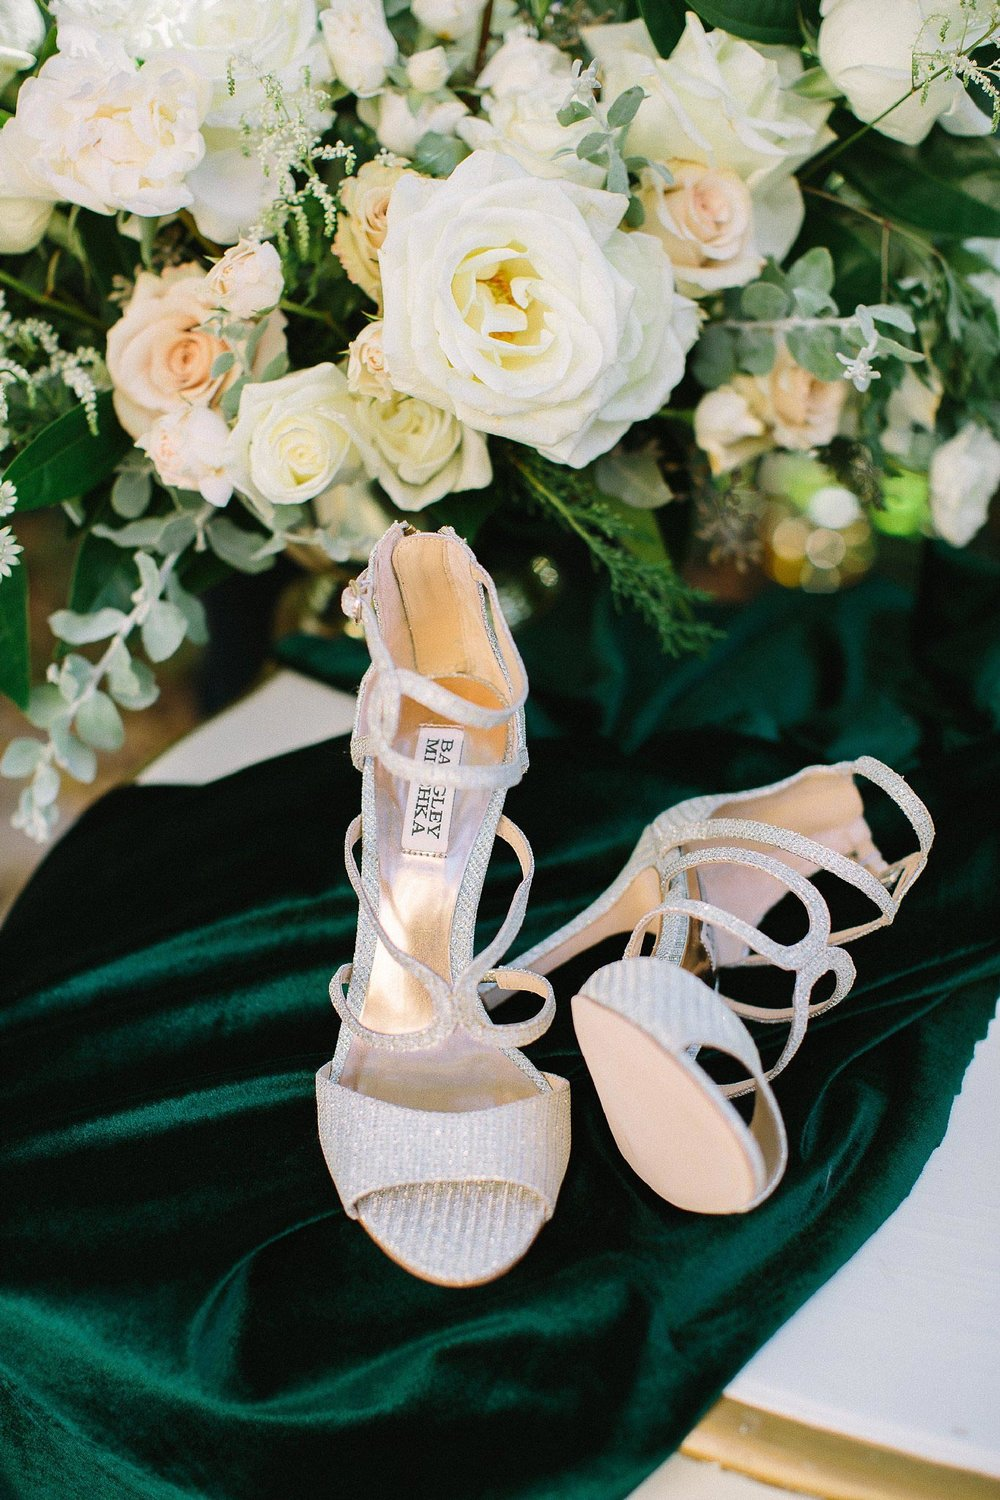 aristide mansfield wedding shoes on velvet green fabric